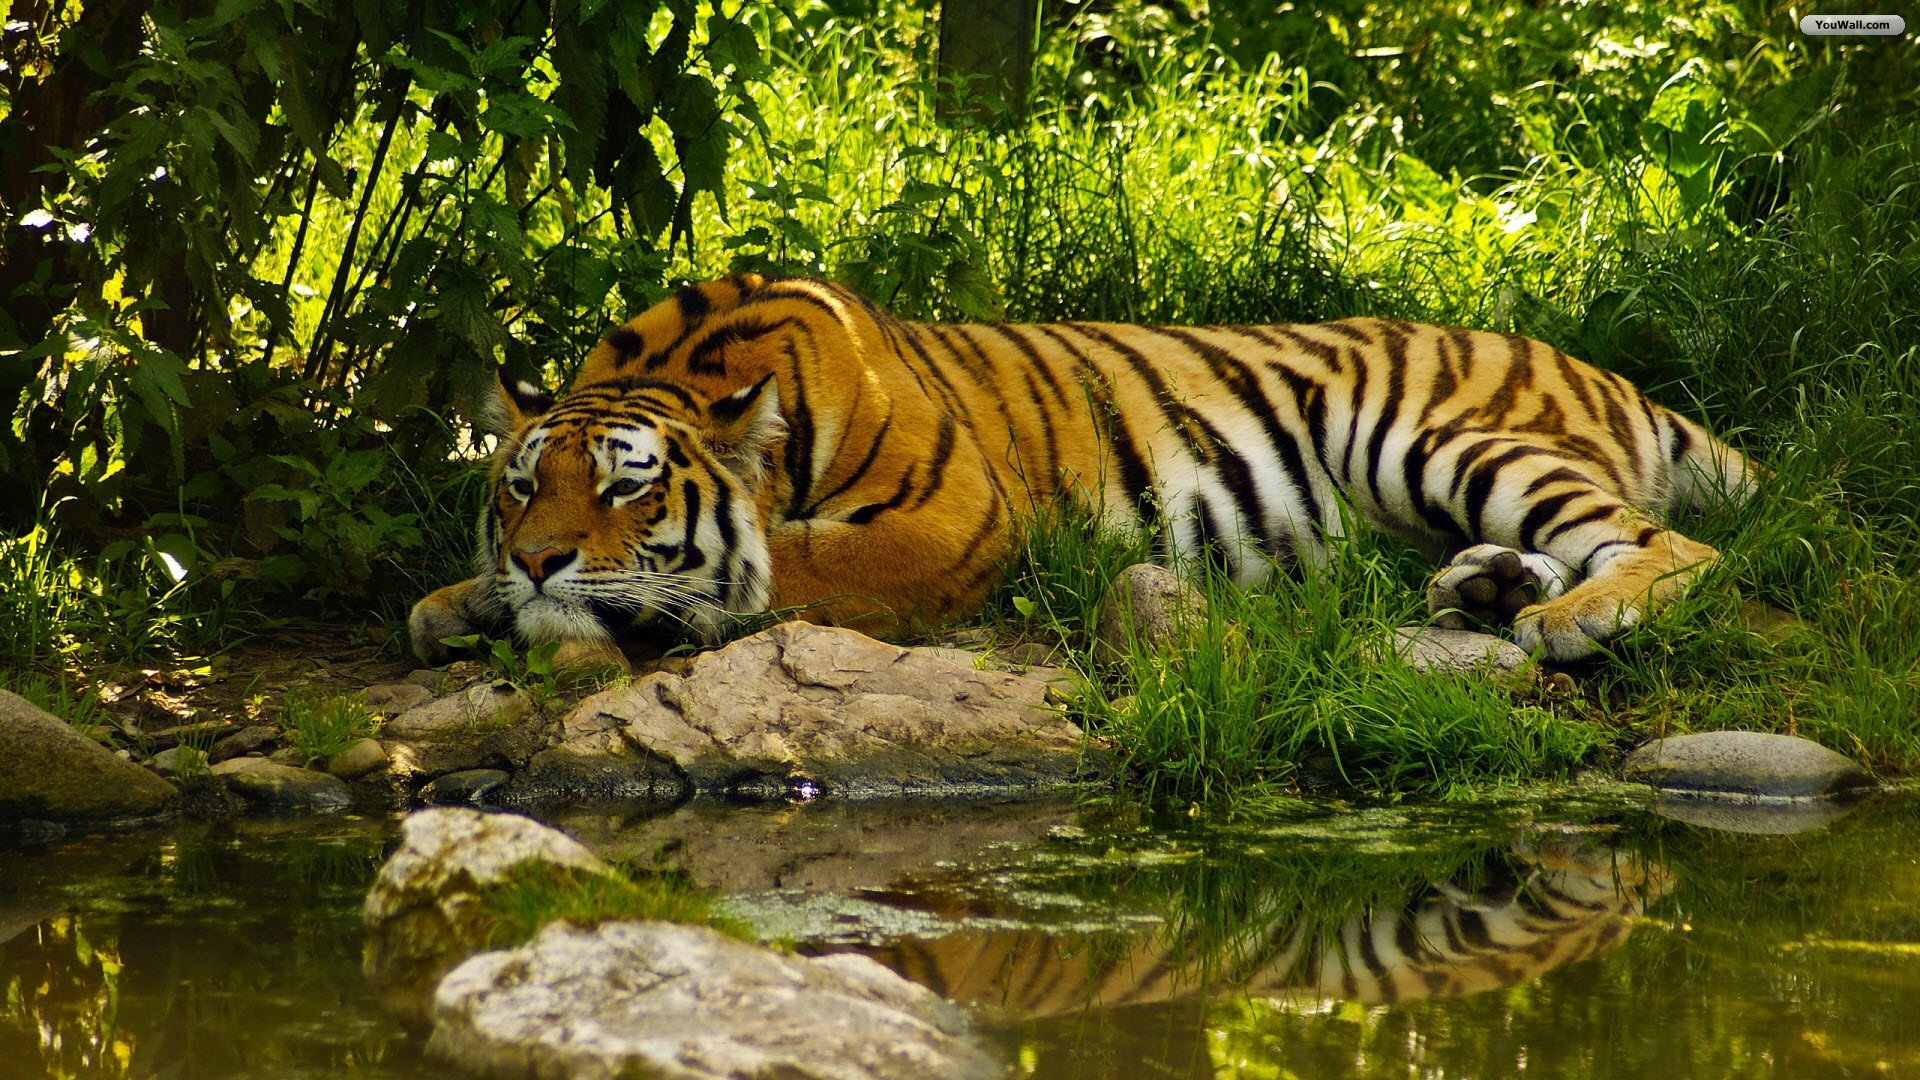 Best Wallpaper High Quality Tiger - Tiger-Wallpaper-High-Quality  Graphic_93628.jpg